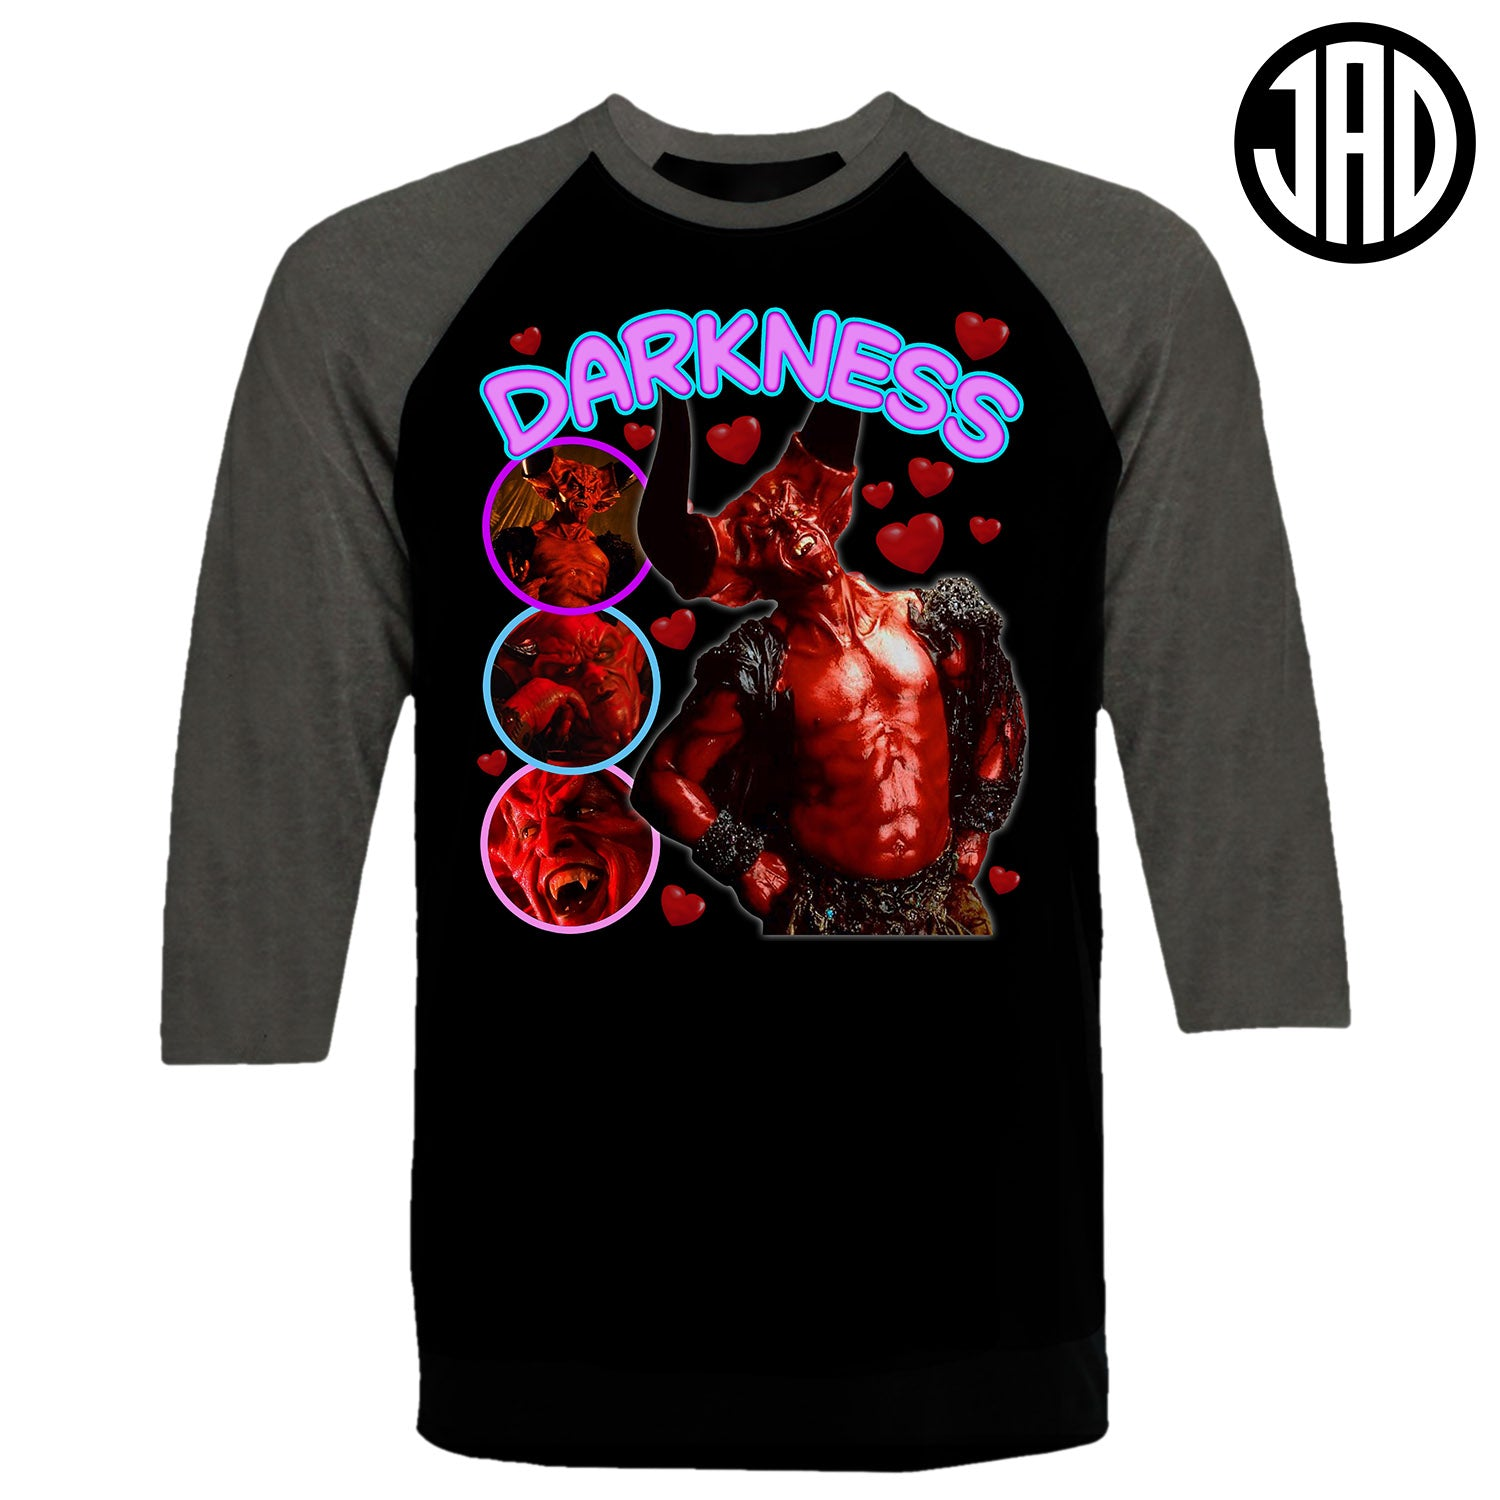 Darkness - Men's Baseball Tee